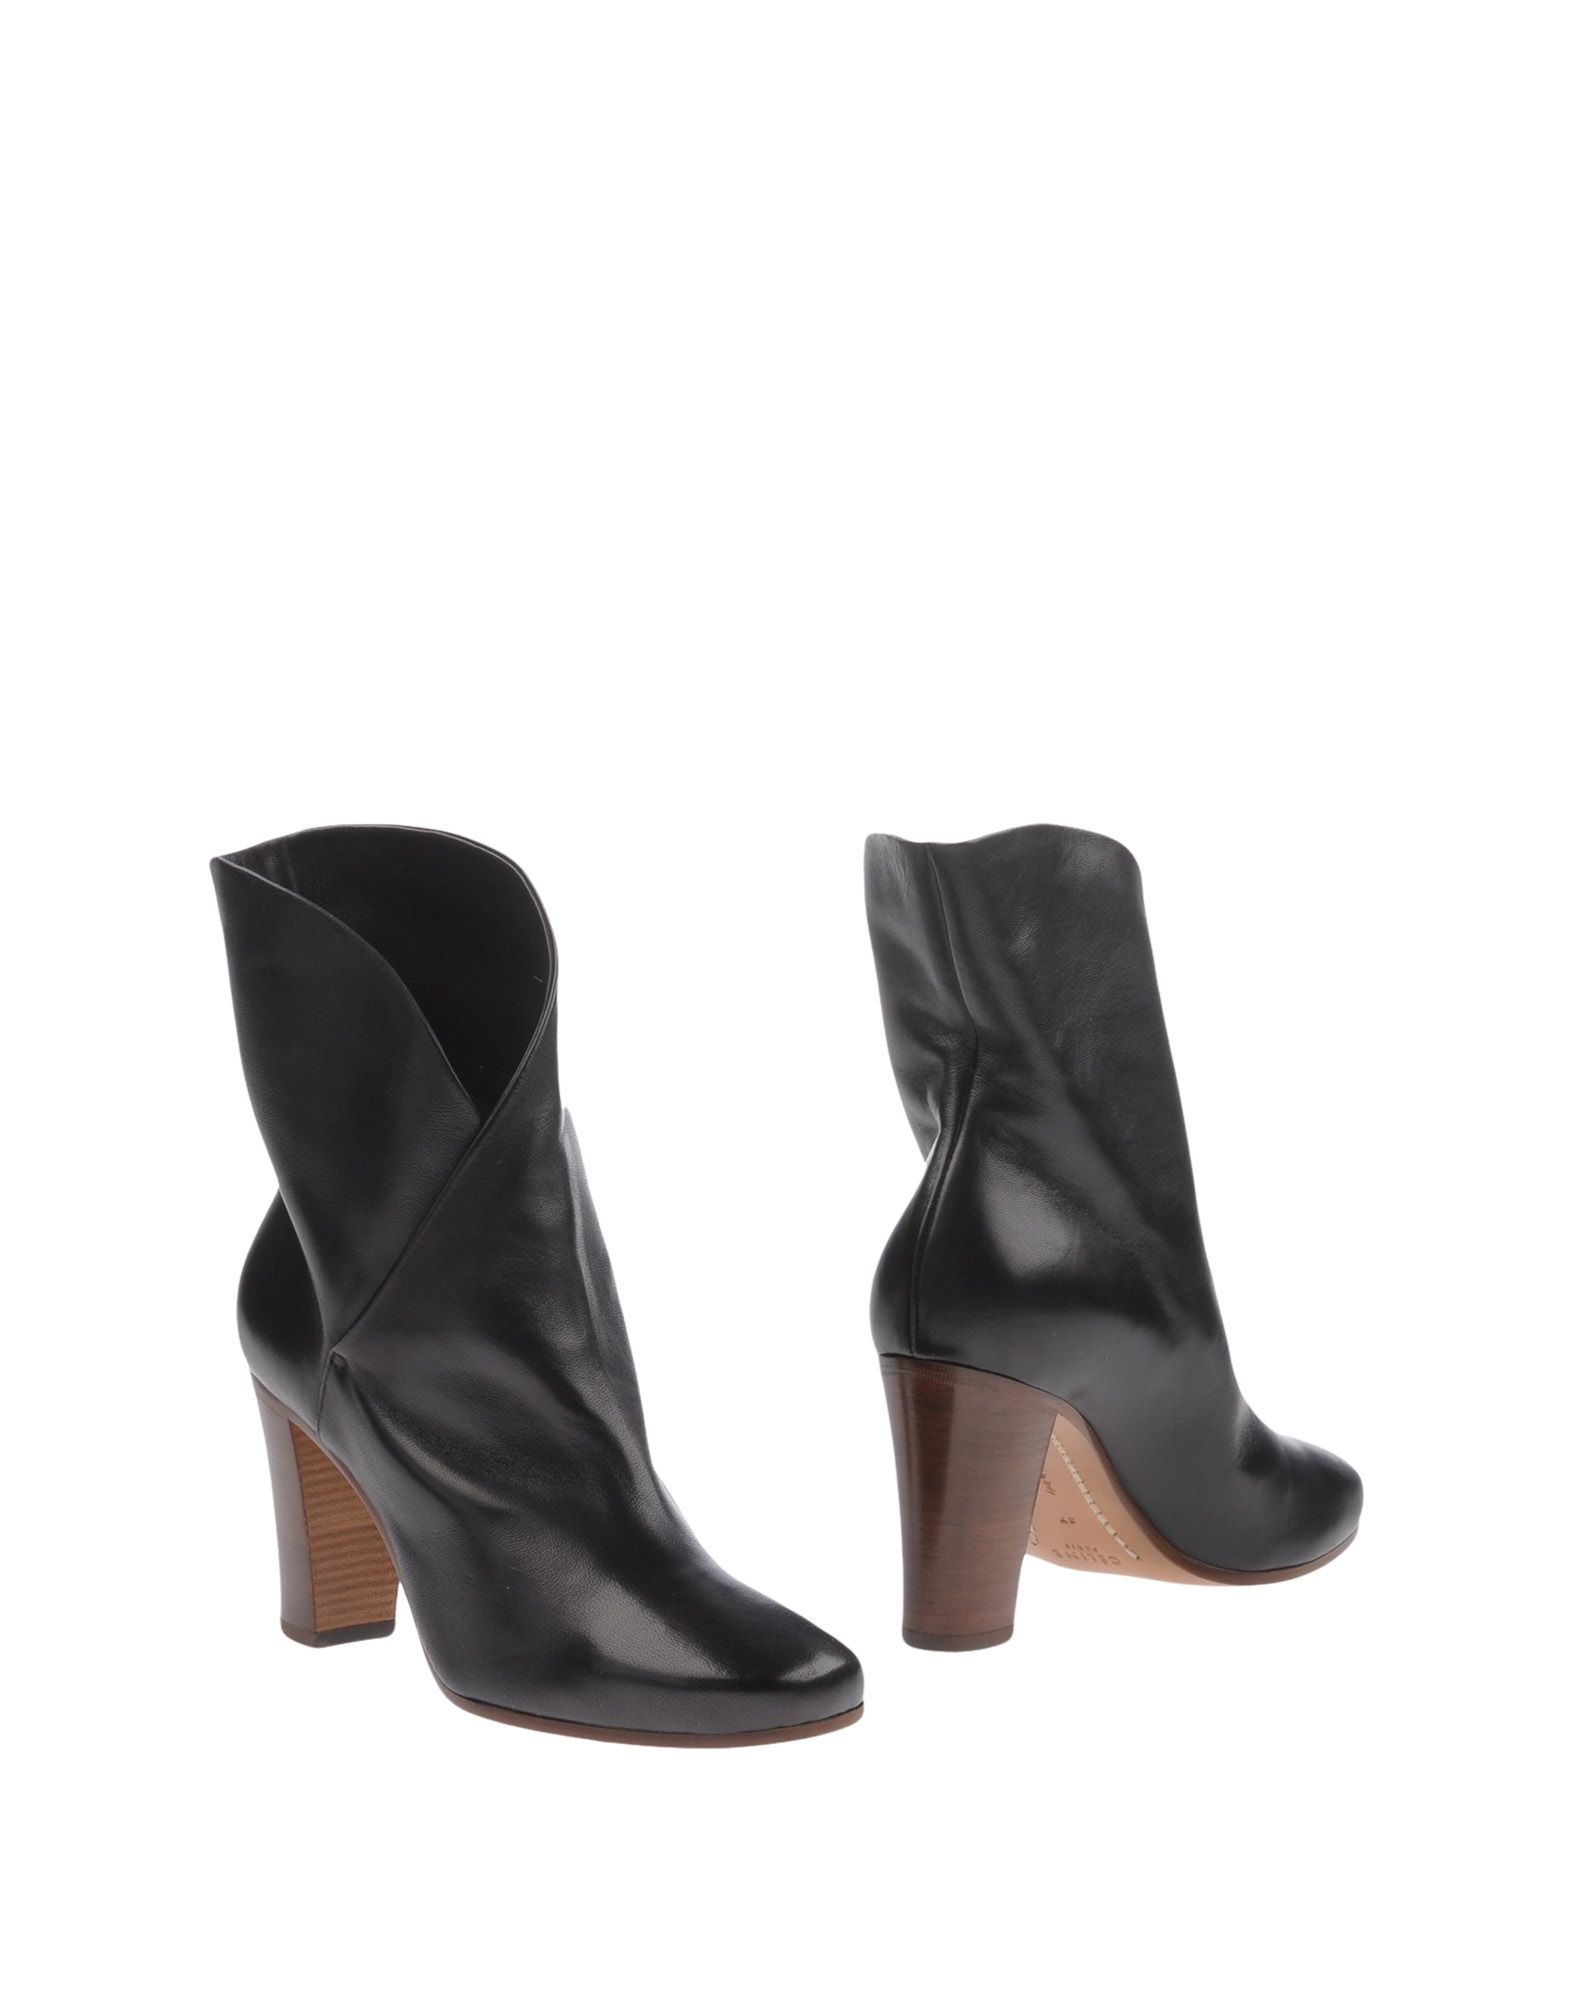 Celine Ankle Boot Boot Ankle - Women Celine Ankle Boots online on  United Kingdom - 11217937NT 442c40